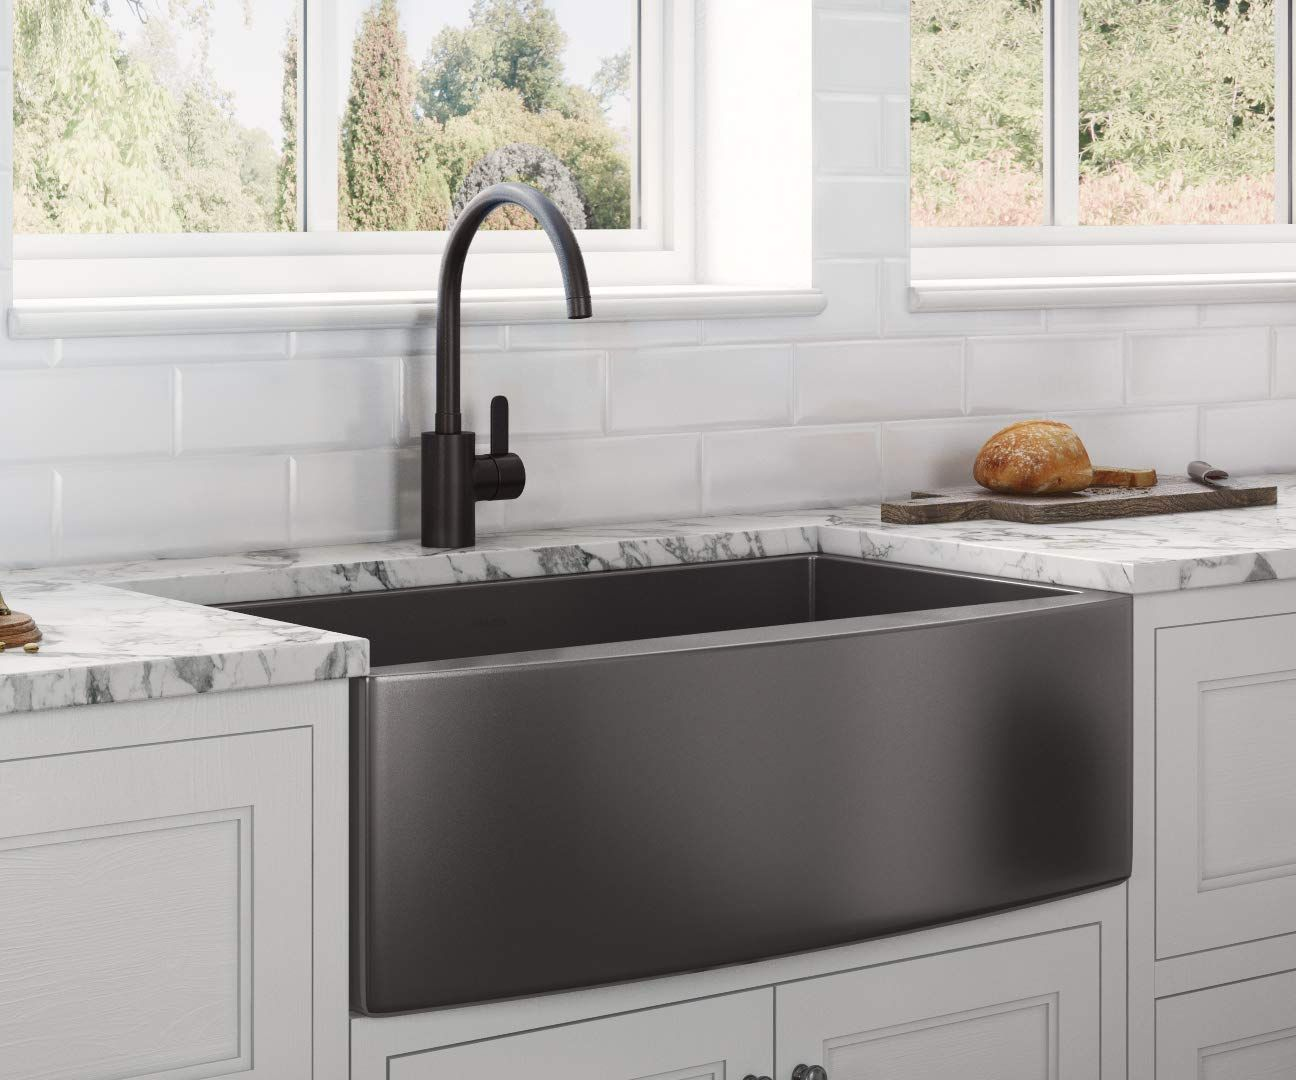 Best Black Farmhouse Sinks We Love Black Apron Front Sinks And All Sorts Of Farmhouse Sin In 2020 Farmhouse Sink Kitchen Apron Front Kitchen Sink Black Farmhouse Sink